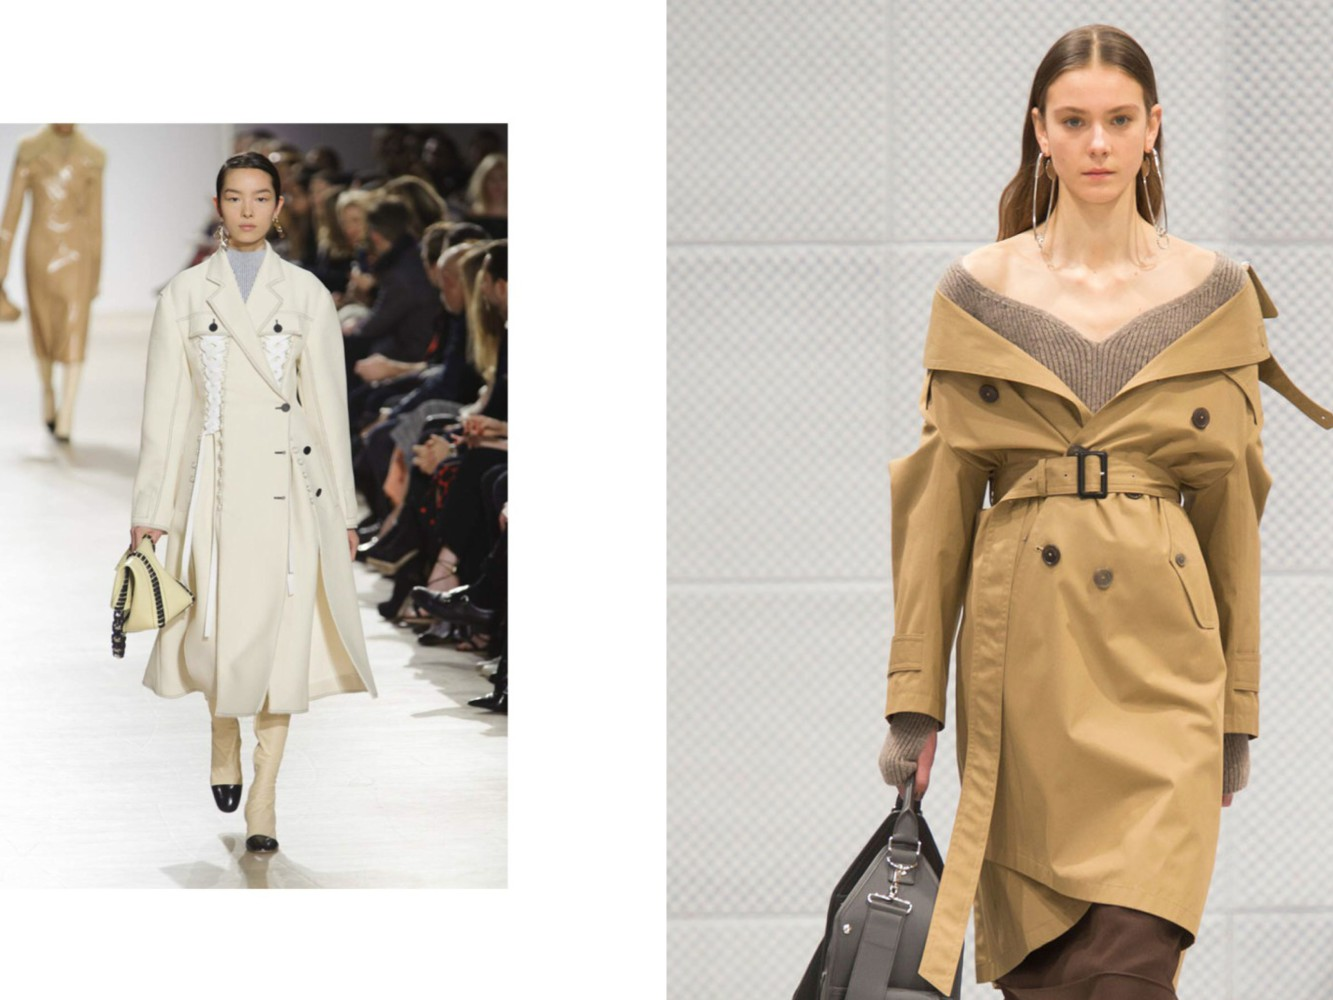 Balenciaga-collection-top-five-styling-hacks-from-Paris-fashion-week-top-London-modelling-agency-IMM